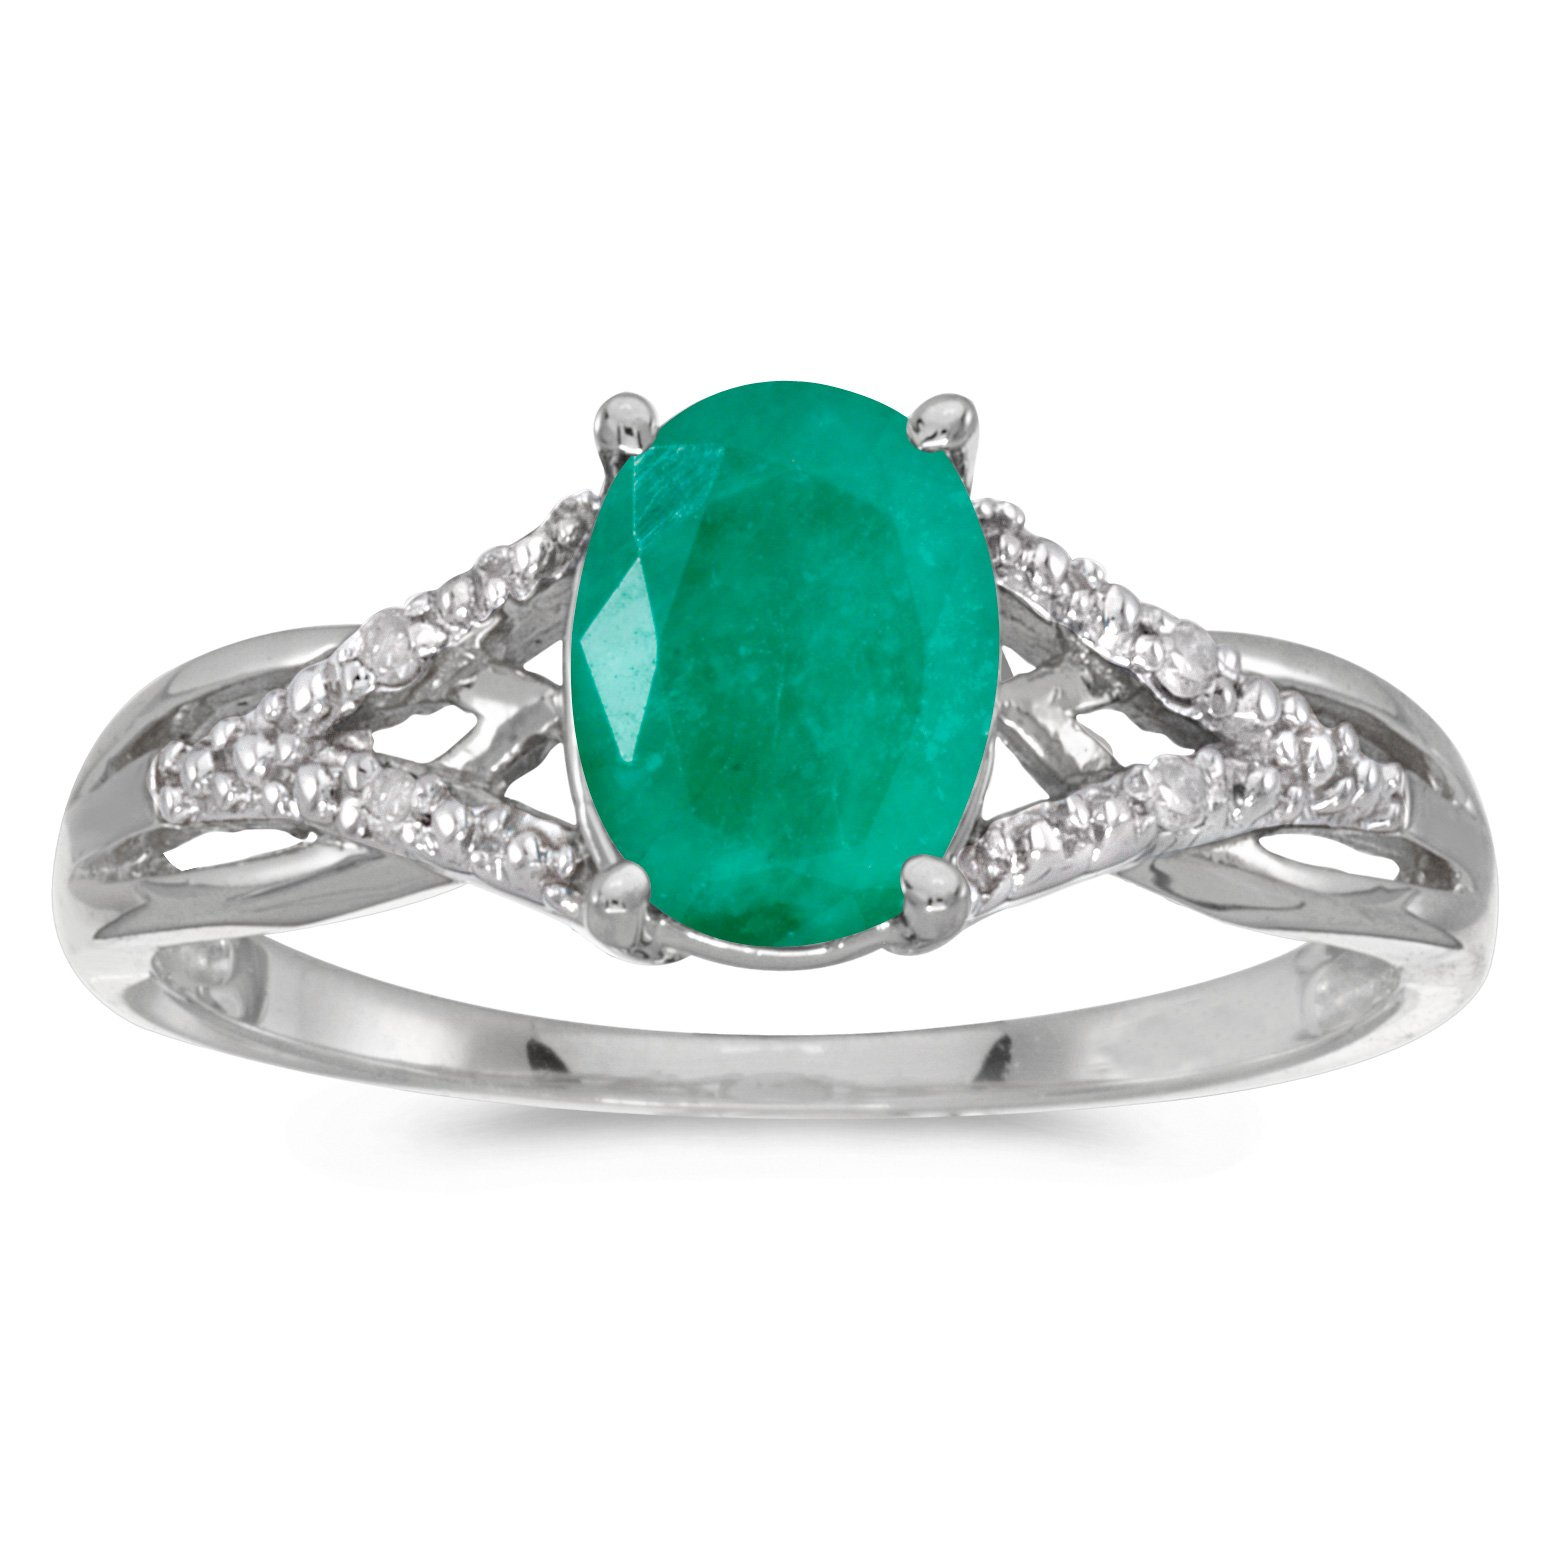 10k White Gold Oval Emerald And Diamond Ring (Size 8)